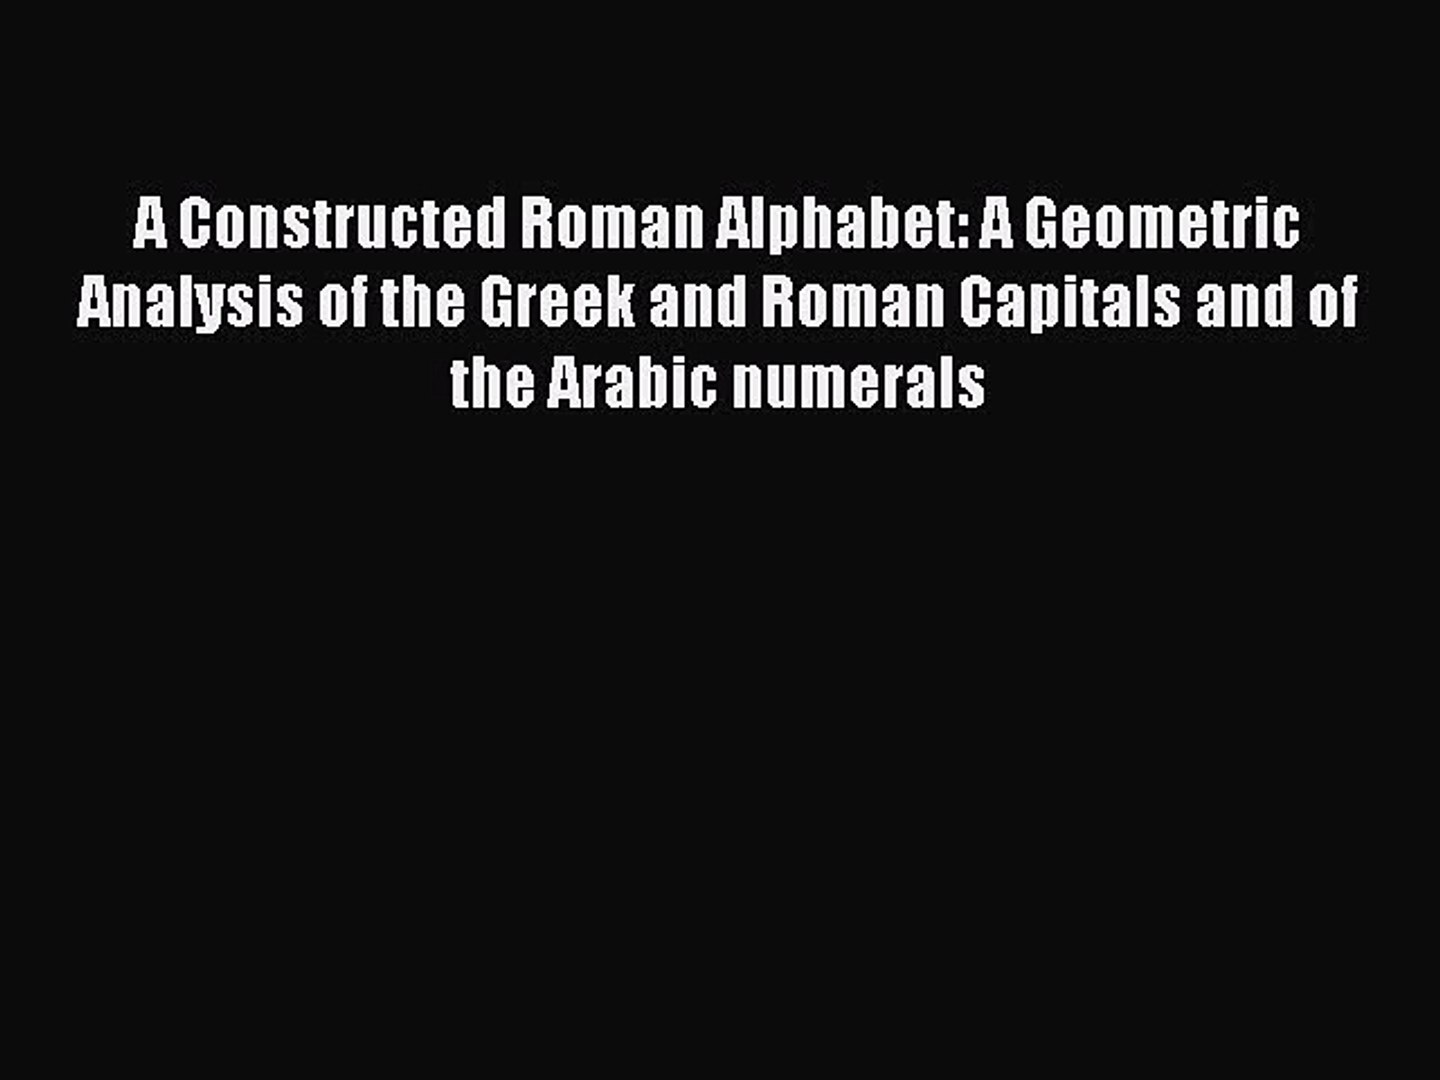 A Constructed Roman Alphabet: A Geometric Analysis of the Greek and Roman  Capitals and of the